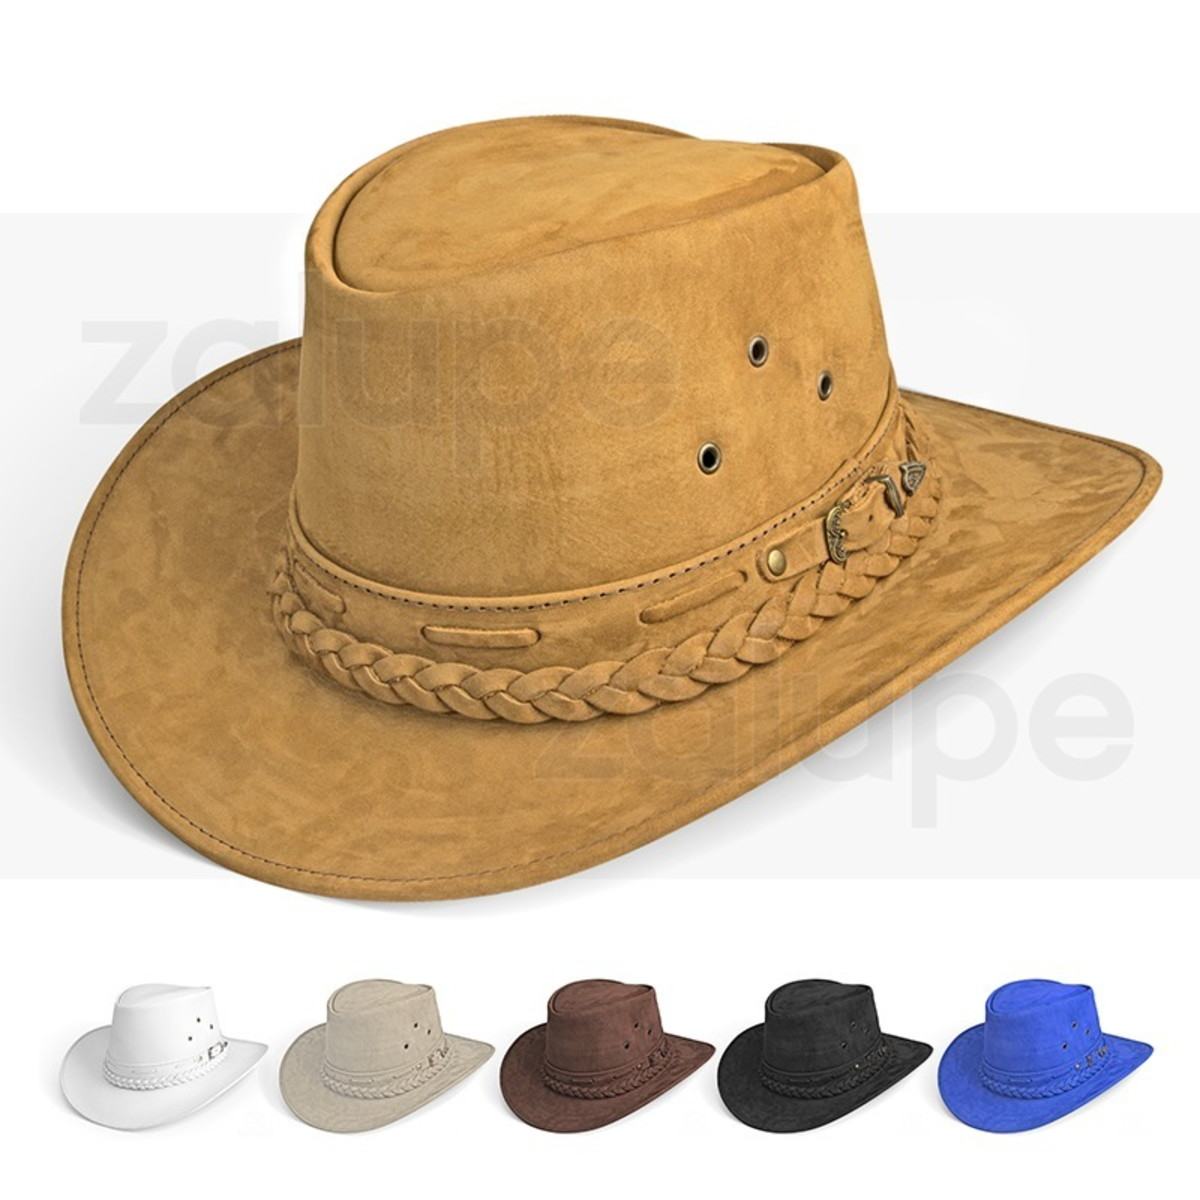 Chapeu Couro Country Australiano Texano Rodeio Bege Unissex no Elo7 ... 00fd8f1f326